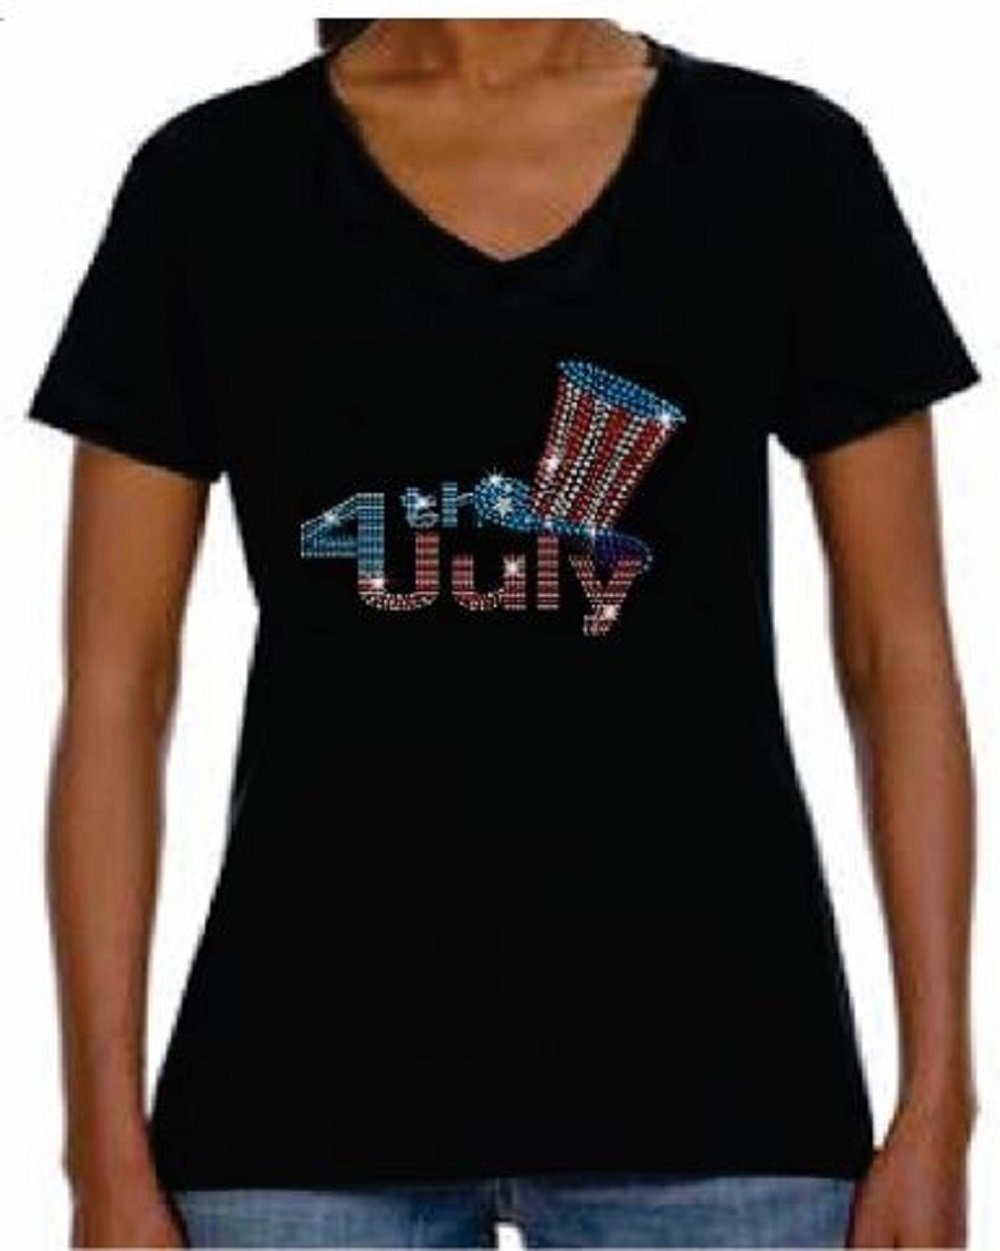 Fourth Of July Shirts Walmart : fourth, shirts, walmart, Shirts, Womens, Shirt, JRW-678, Women, Short-Sleeve, V-Neck-T-Shirt, Walmart.com